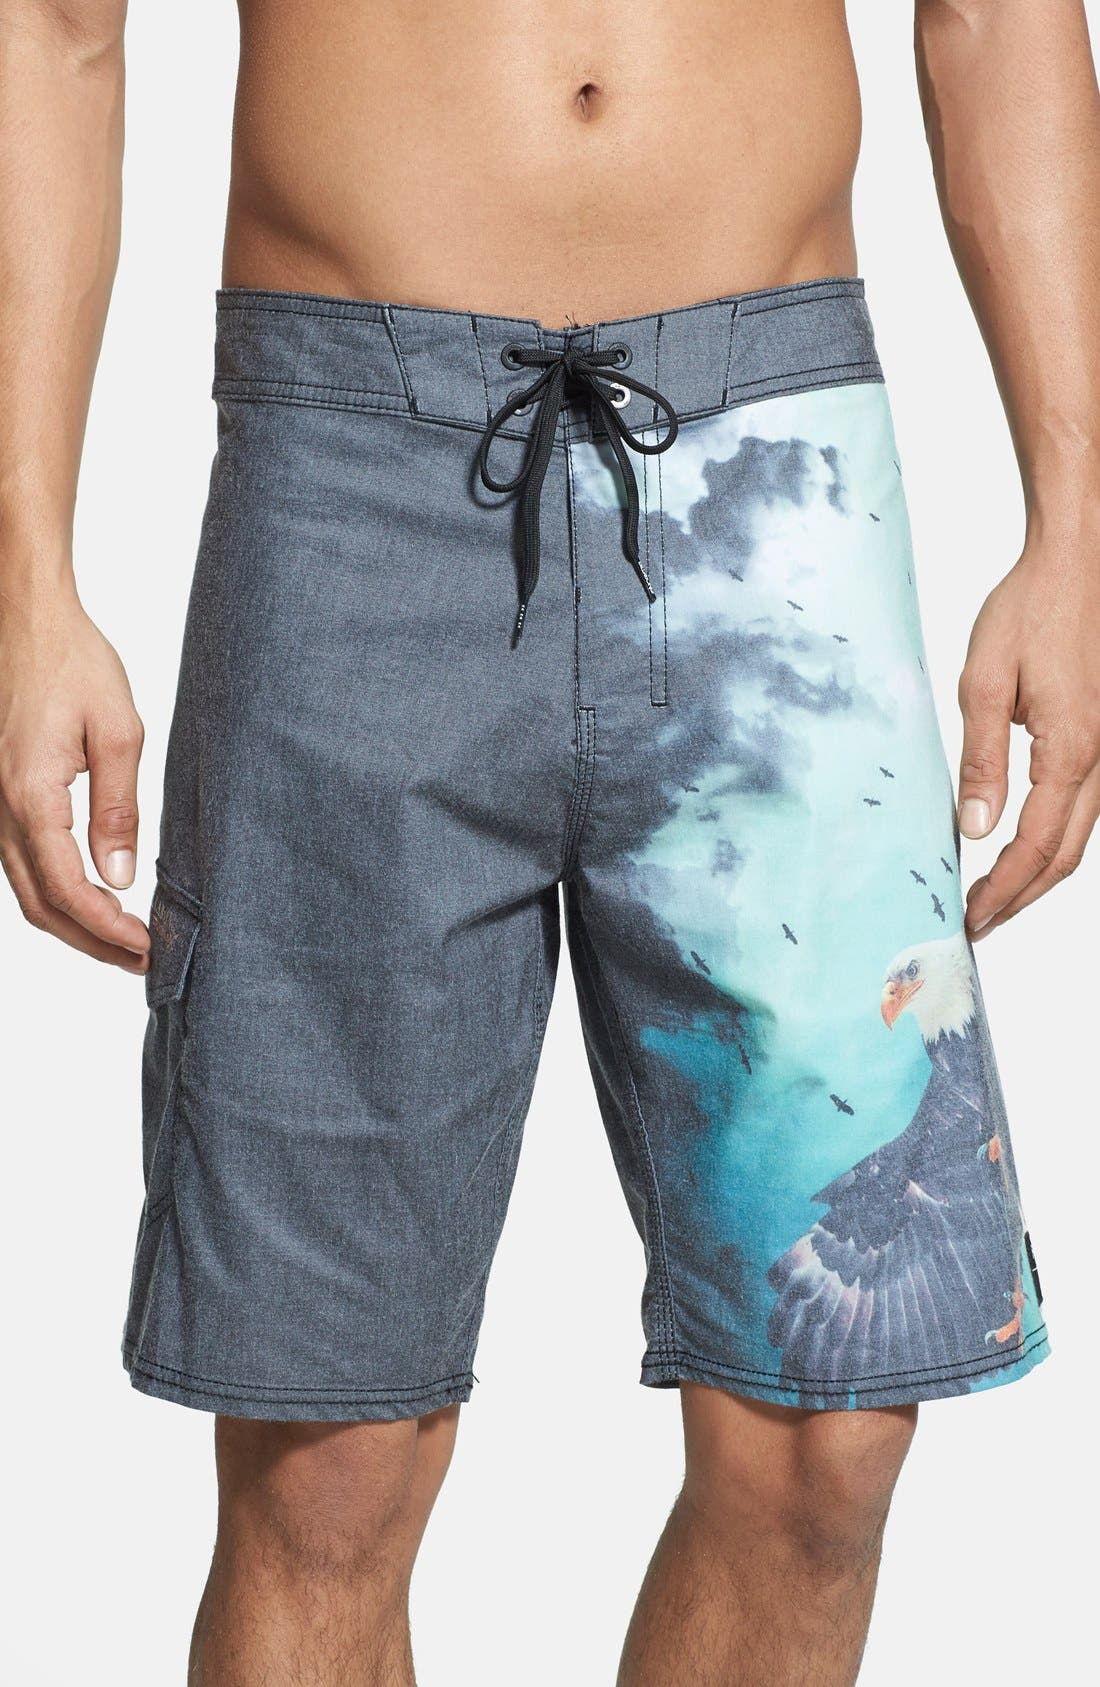 Alternate Image 1 Selected - Billabong 'Wild - White Mike Series' Board Shorts